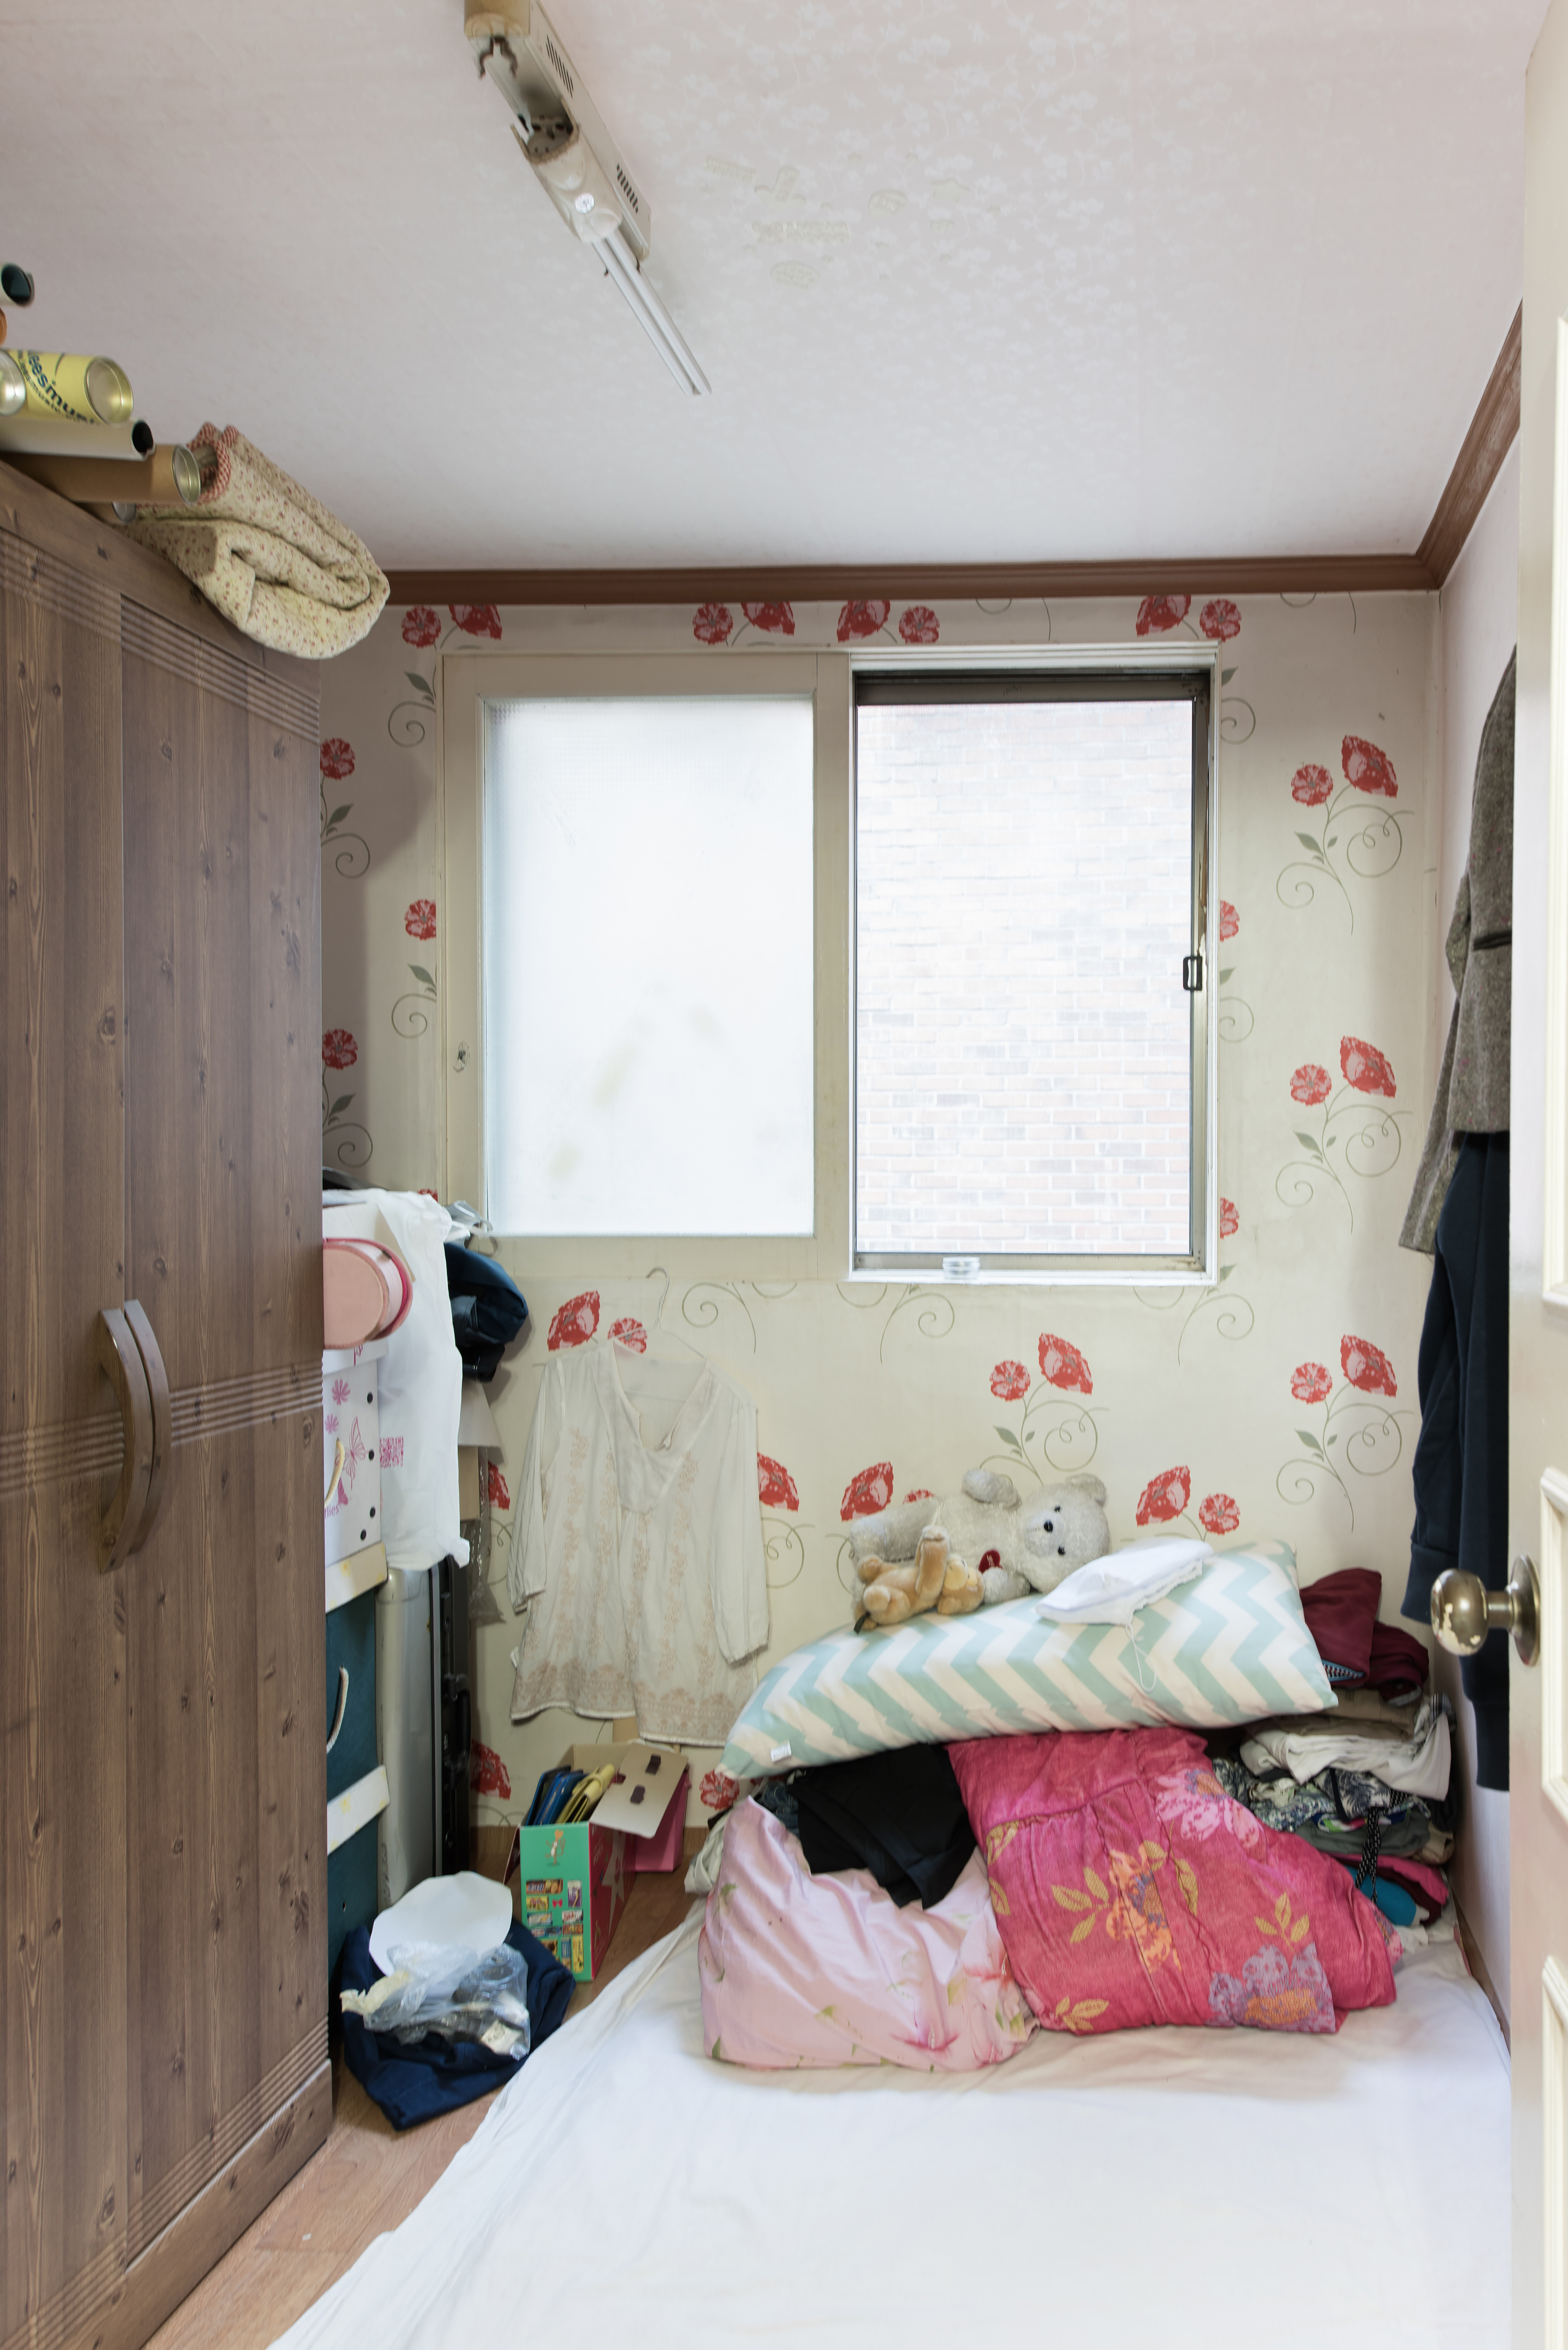 Sewol disaster victims: The bedrooms they left behind - News from ...